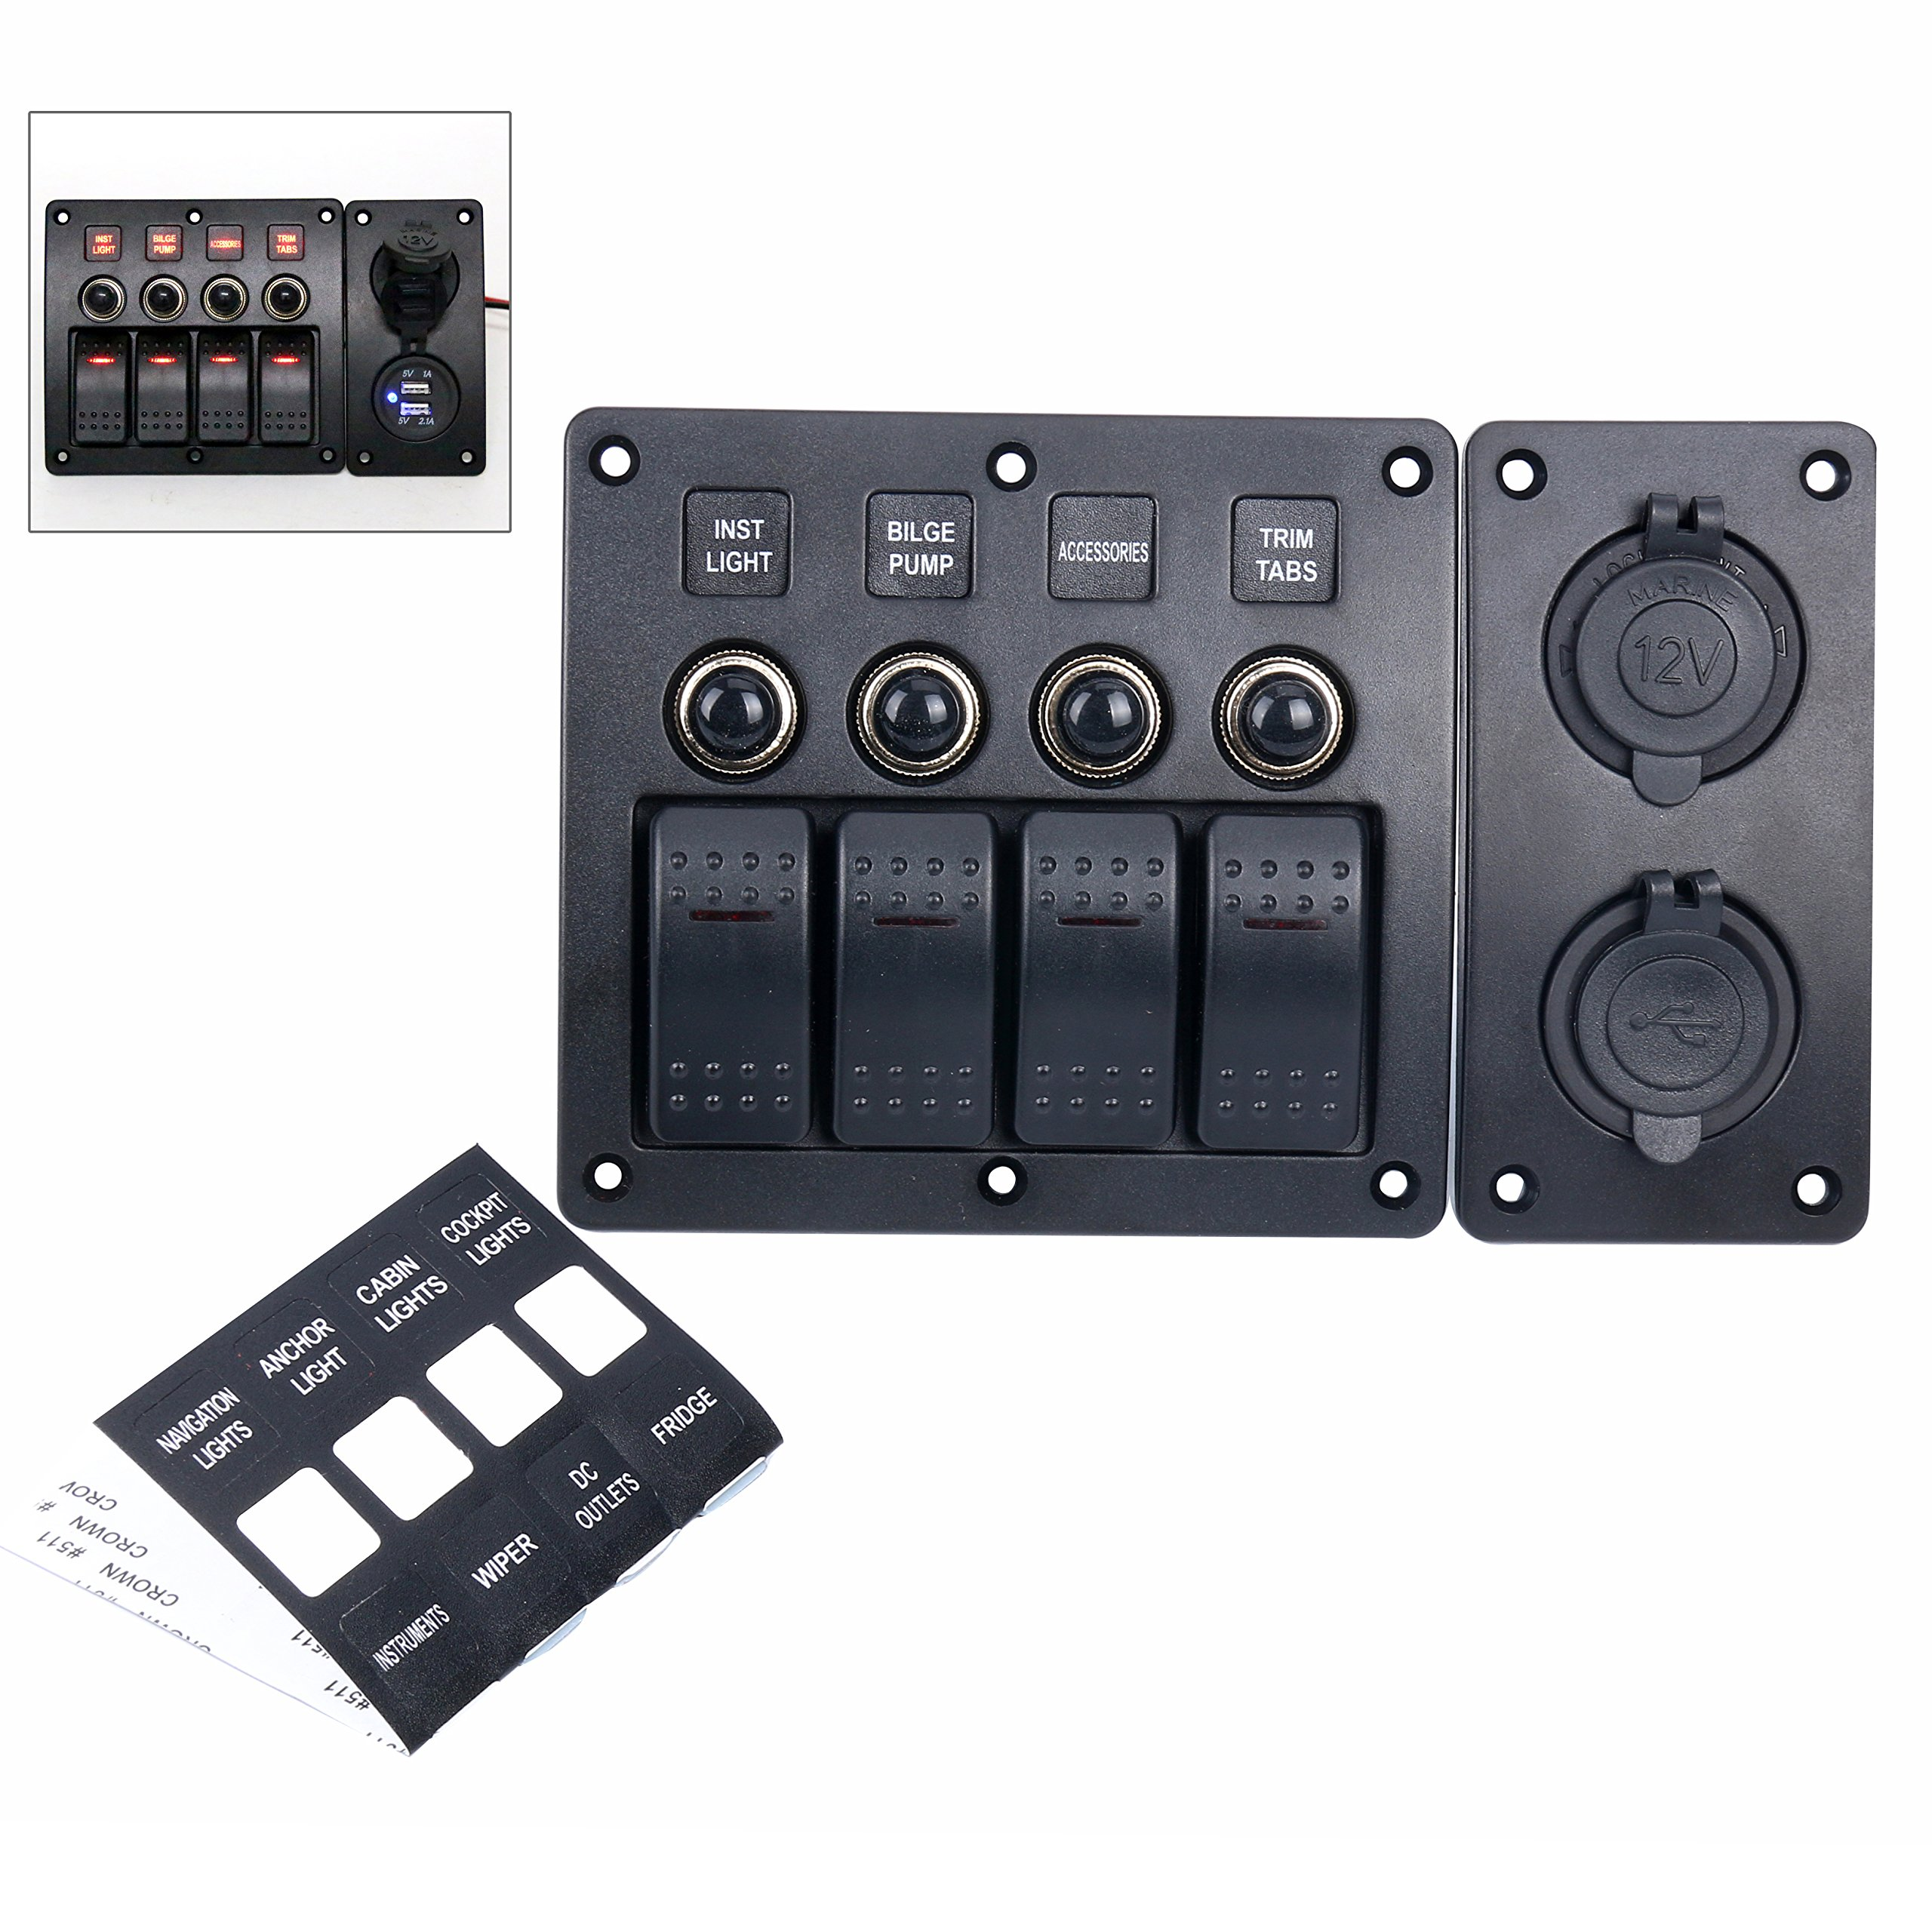 Amarine-made 4 Gang Red LED Indicators Rocker & Circuit Breaker Waterproof Marine Boat Rv Switch Panel Combined with Dual USB / 12v Power Adapter Panel - PN-CB4-R-CB1/S1S2